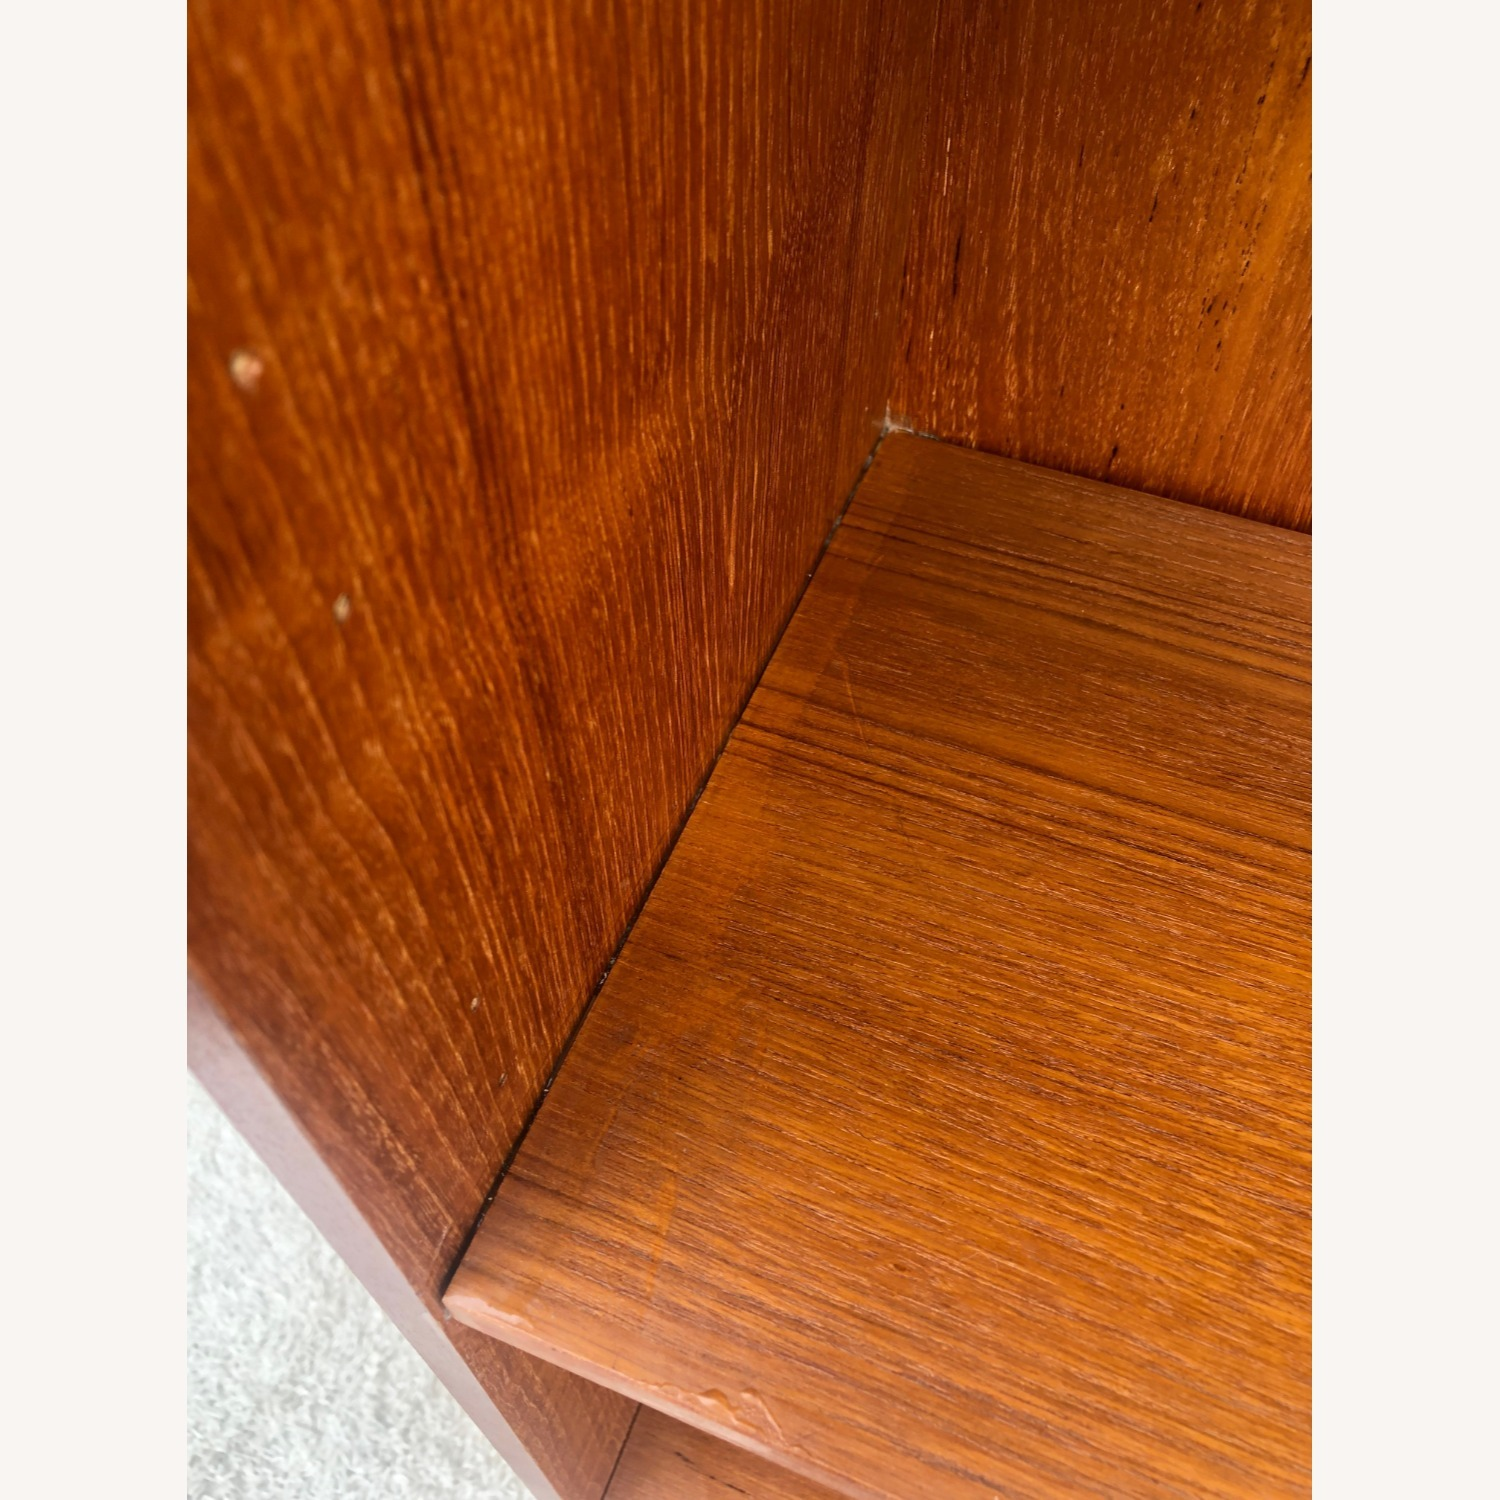 Danish Modern Teak Shelving with Cabinet - image-14